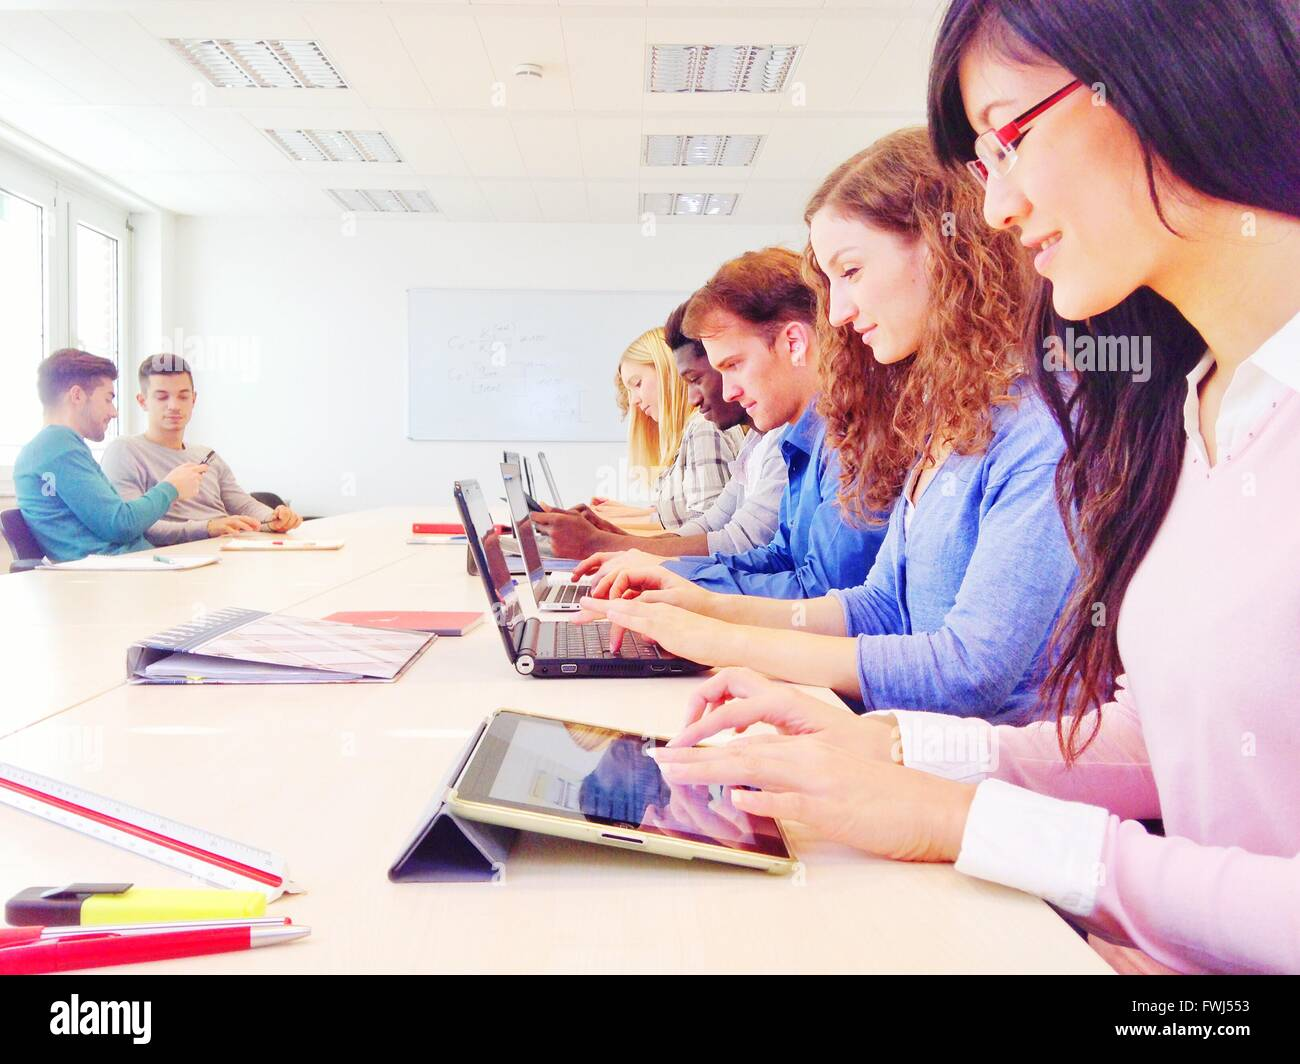 Business People Using Technologies At Conference Table - Stock Image